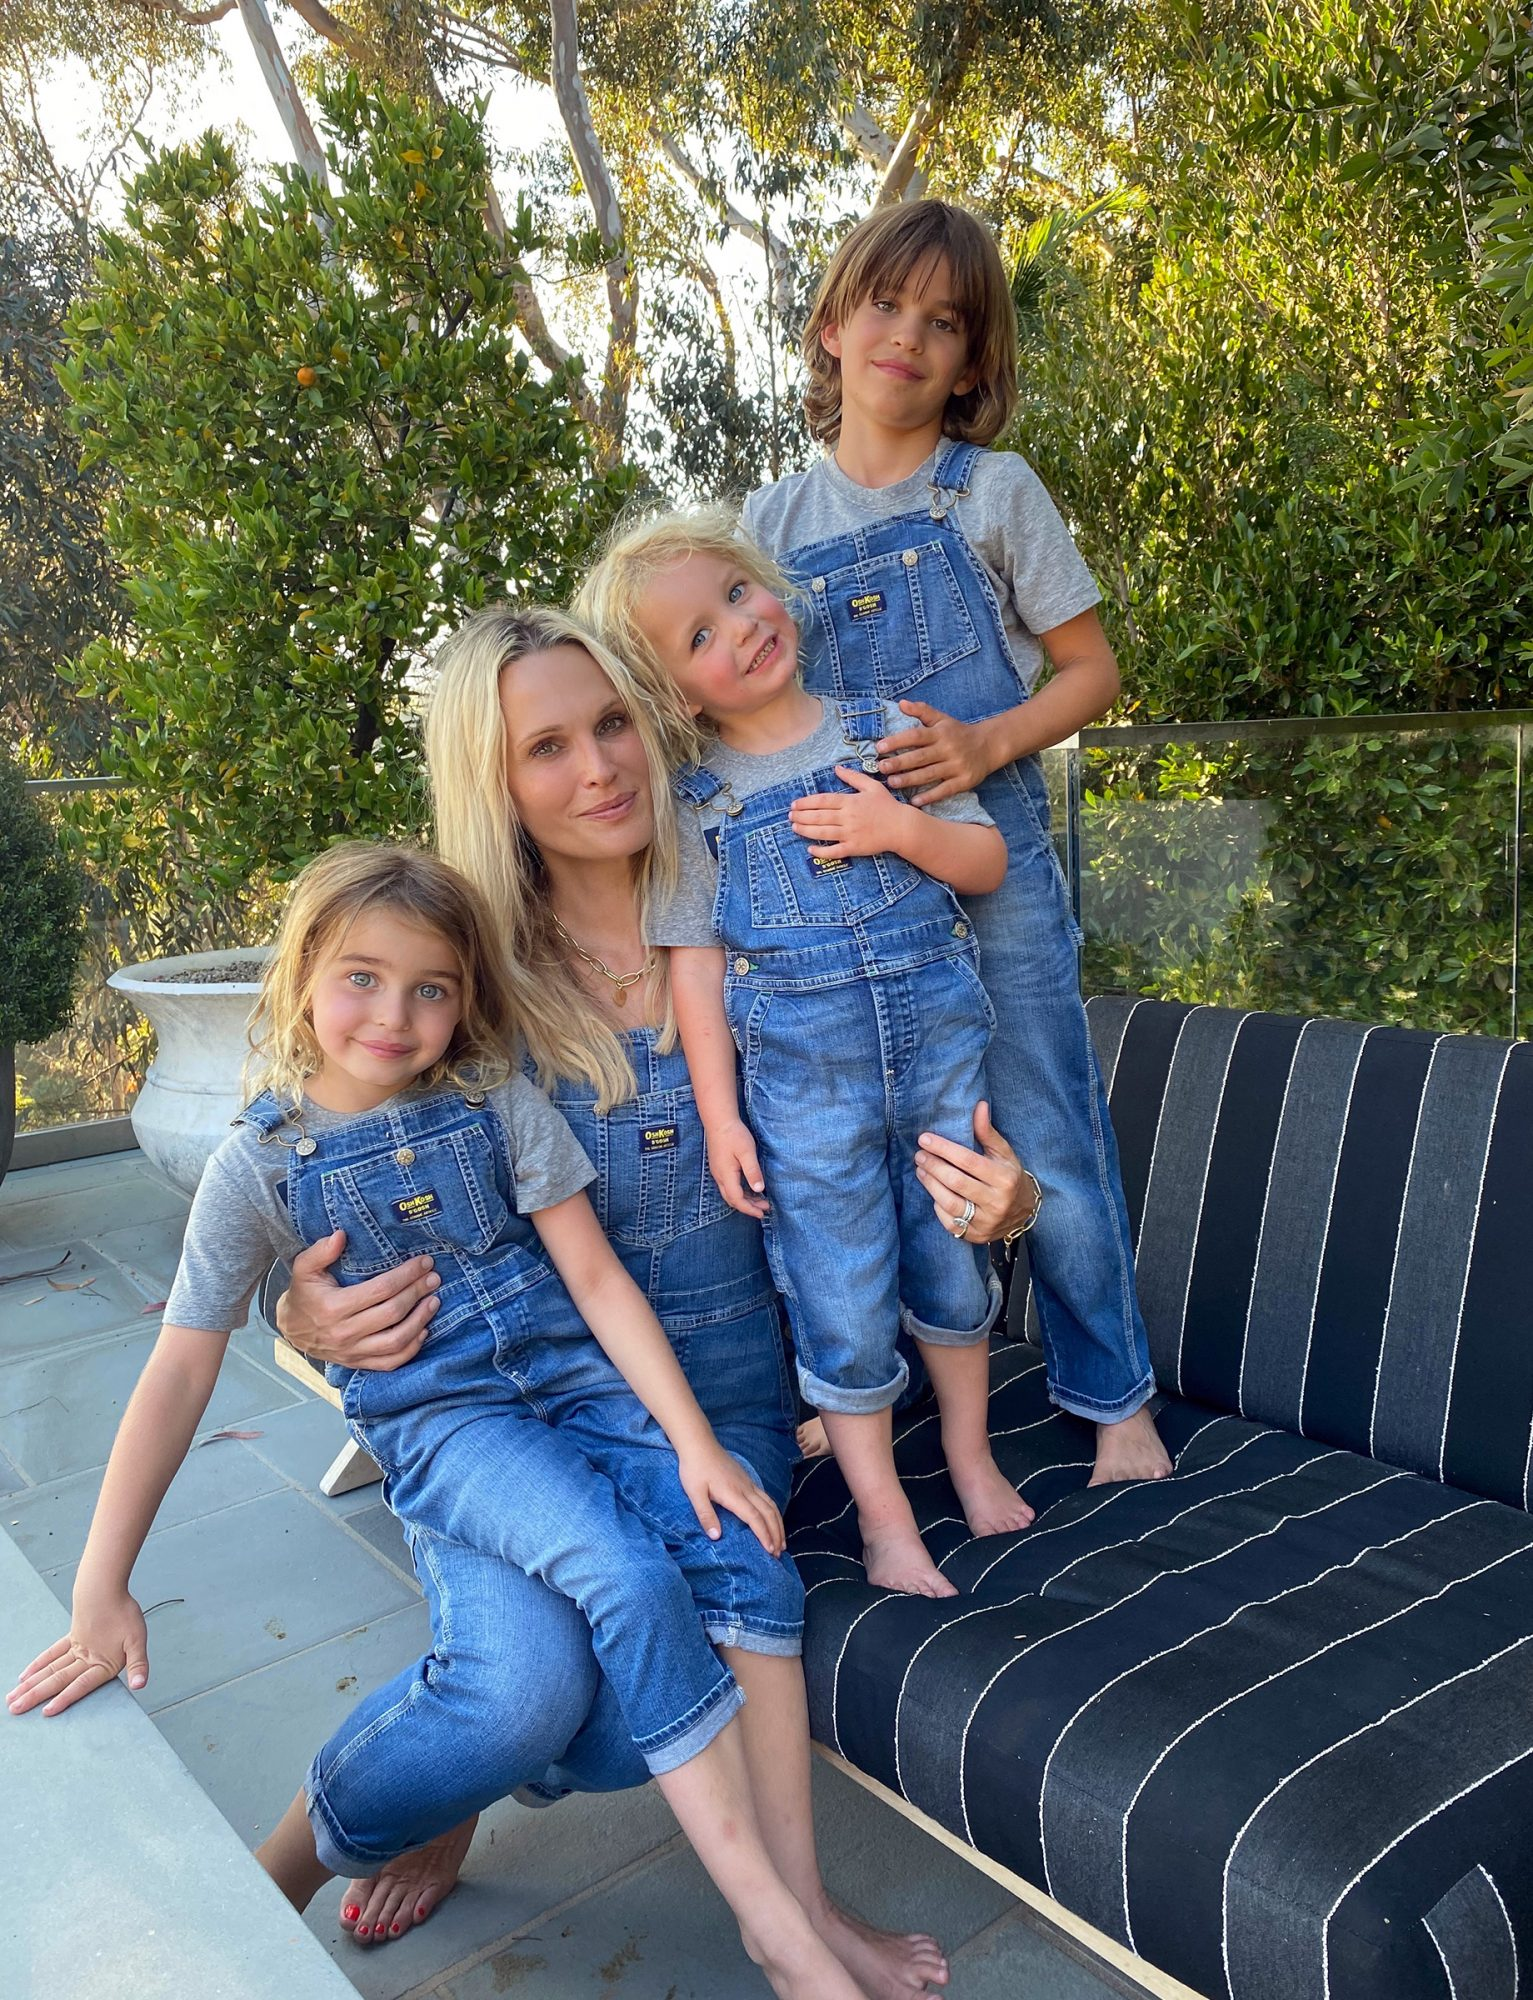 Molly Sims enjoys Camp OshKosh with kids wearing the brand's limited edition family overalls